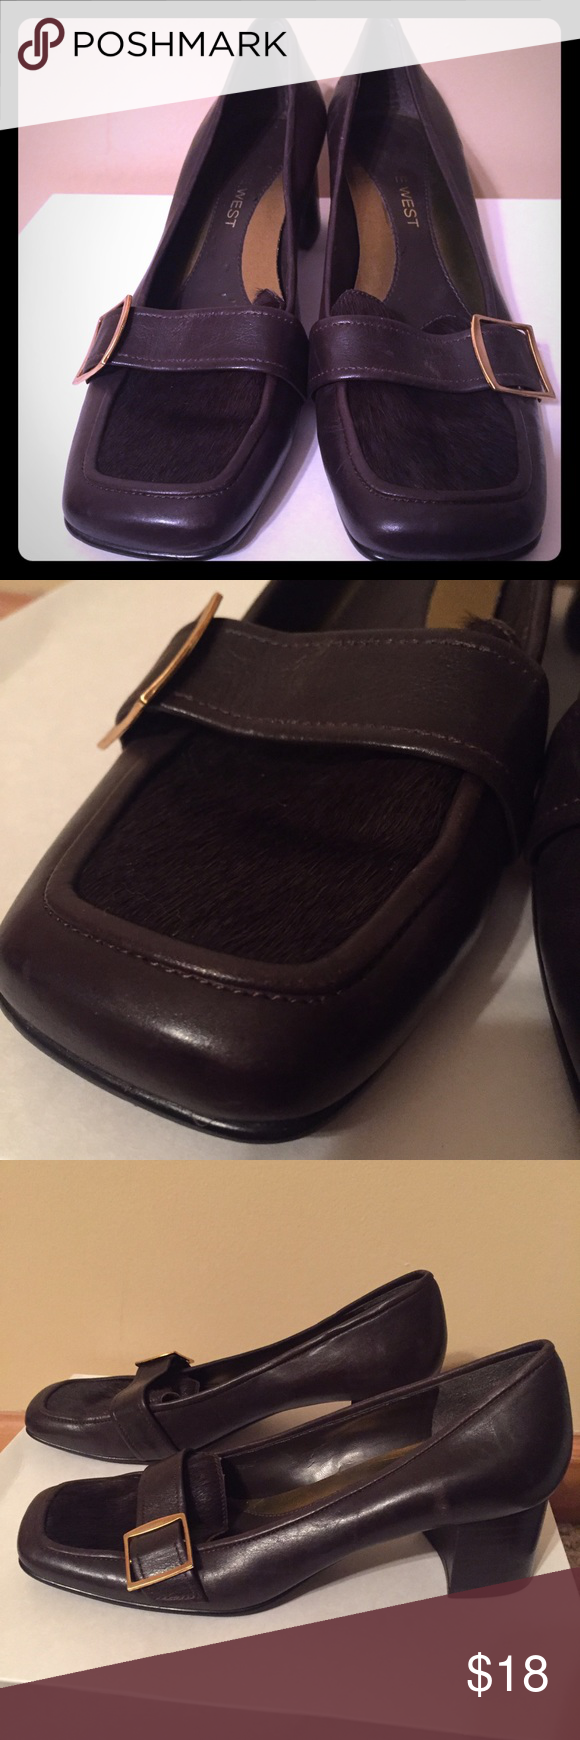 Nine West work shoes with faux hair detailing Nine West work shoes with faux hair detailing on toes. Size 7. Brown. Few scuffs, but only worn a couple times. Nine West Shoes Heels